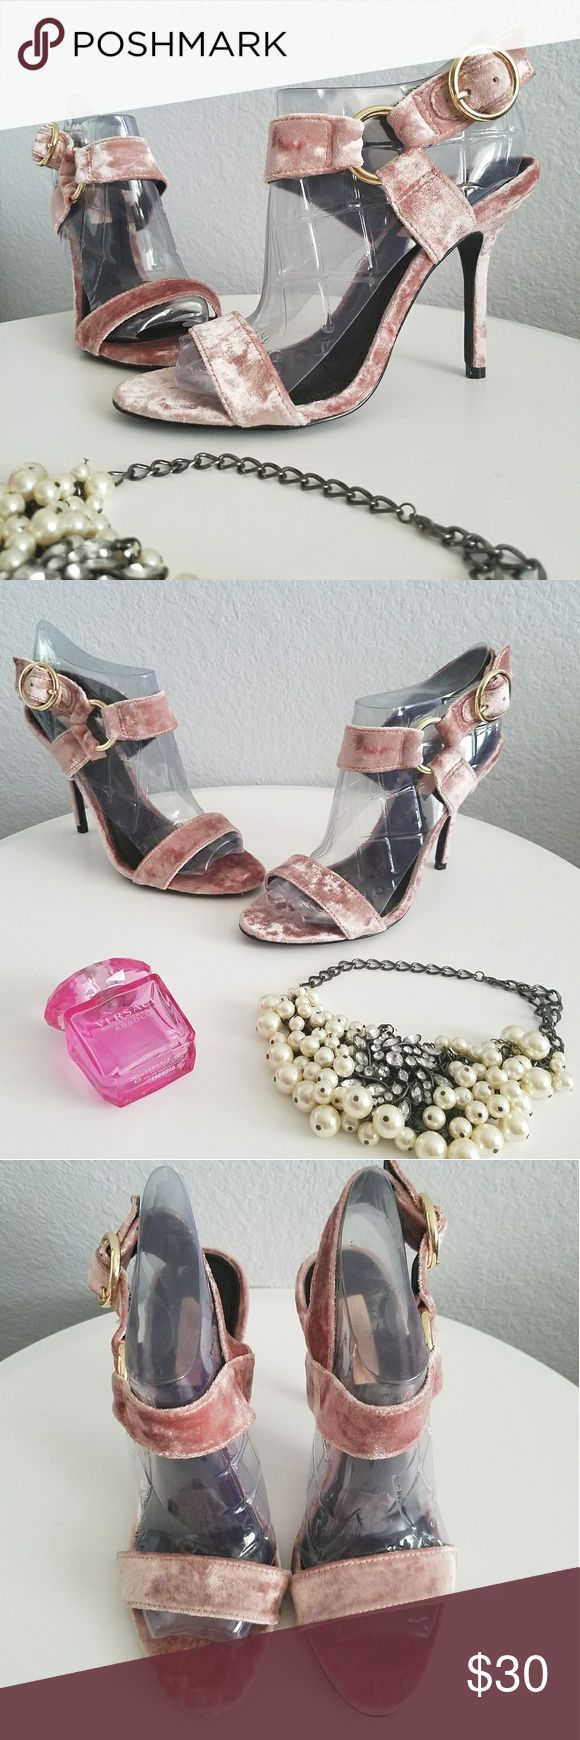 Crush Velvet Pink Topshop Heels New. Never before worn. These are absolutely gorgeous heels! Very classy and elegant open toe sandal heel. They feature a pink crushed ballet velvet material with gold hardware on the straps. Very soft and comfortable as well. No box. Let me know if you have any questions! Topshop Shoes Heels